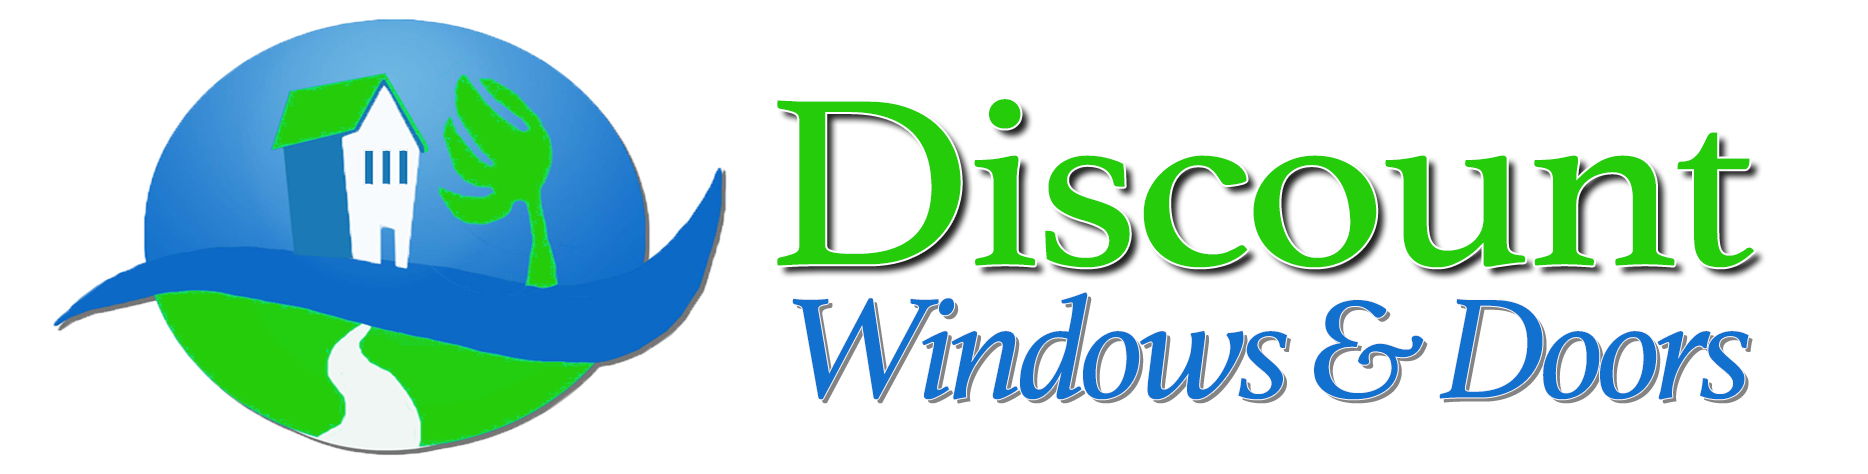 Discount Windows, Doors & Cabinets